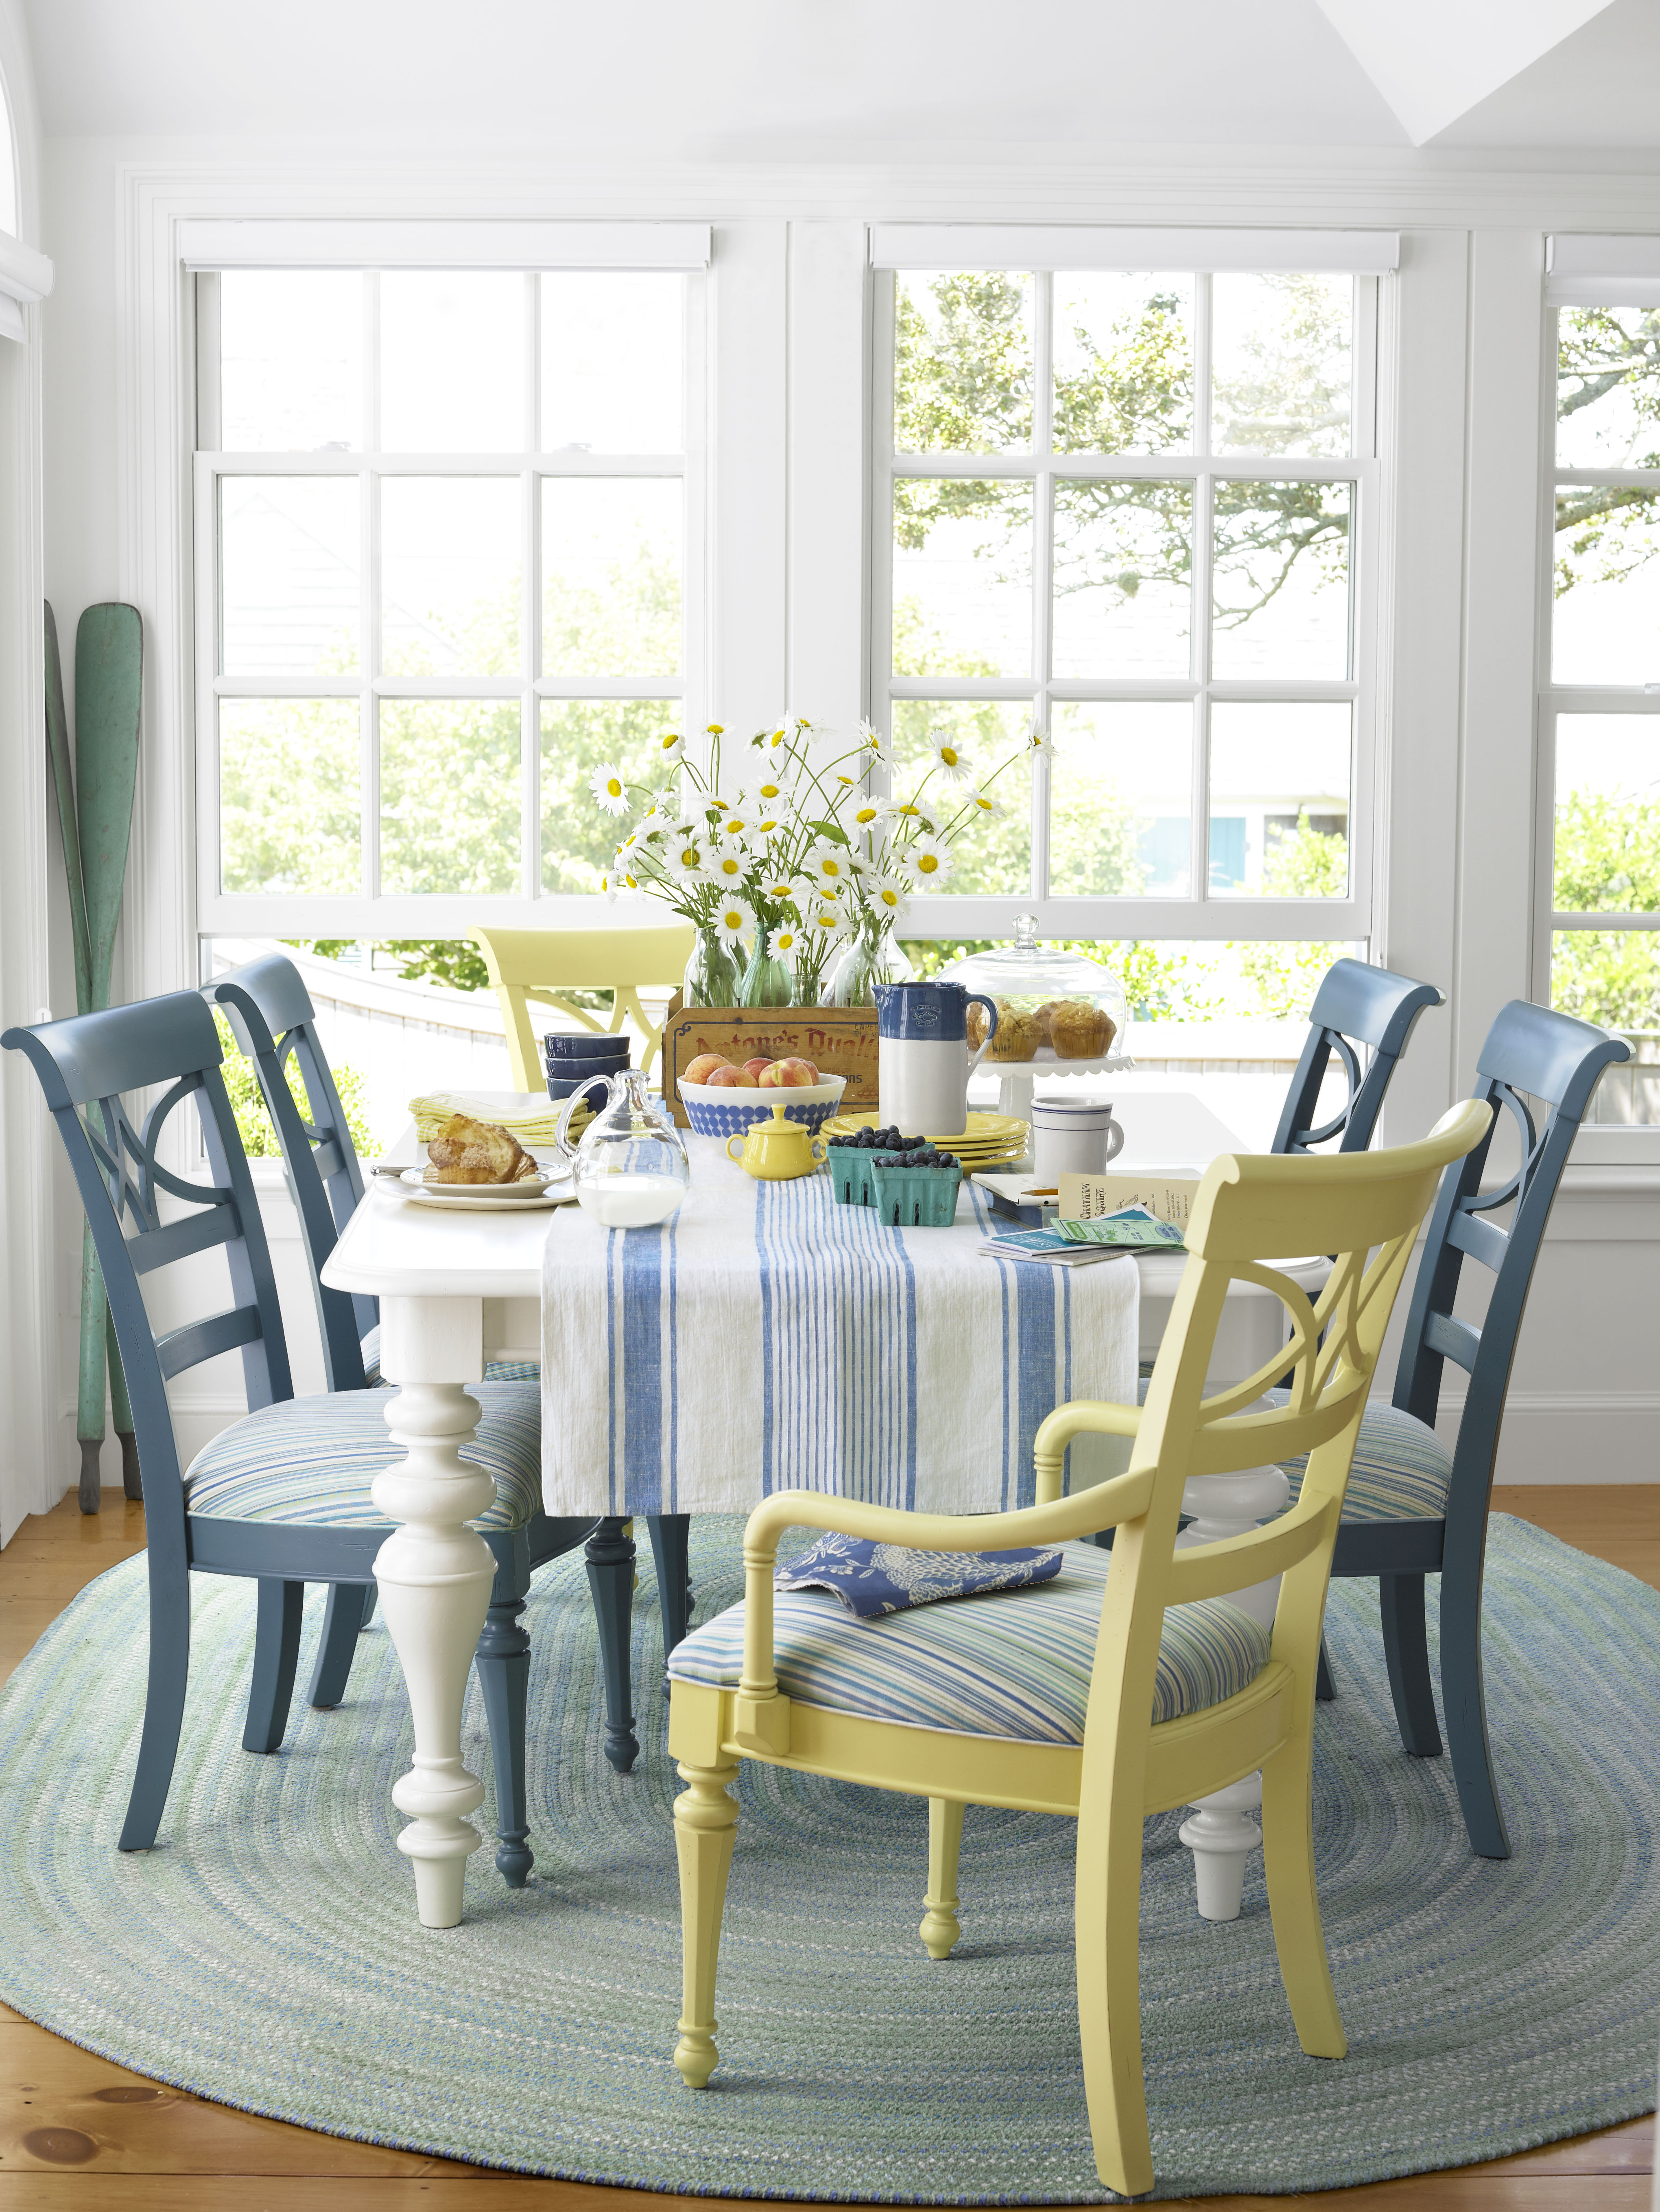 Best Coastal Dining Room Ideas Photos House Design Interior